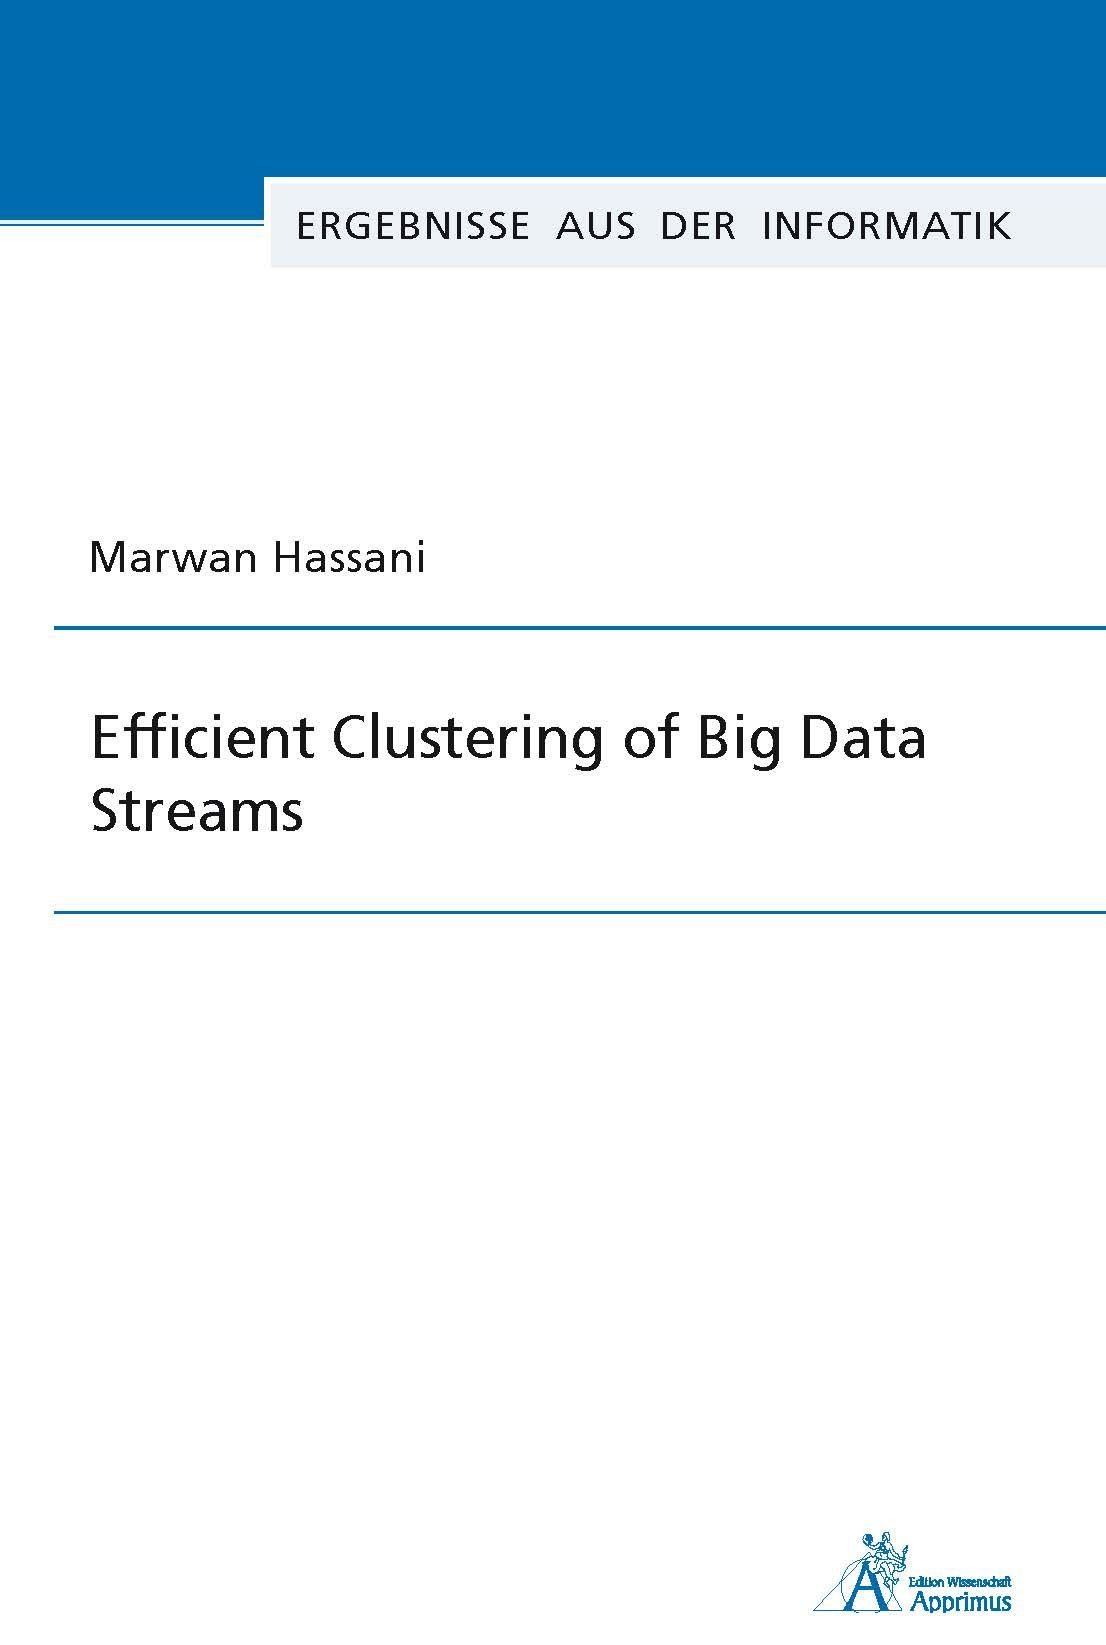 Efficient Clustering of Big Data Streams